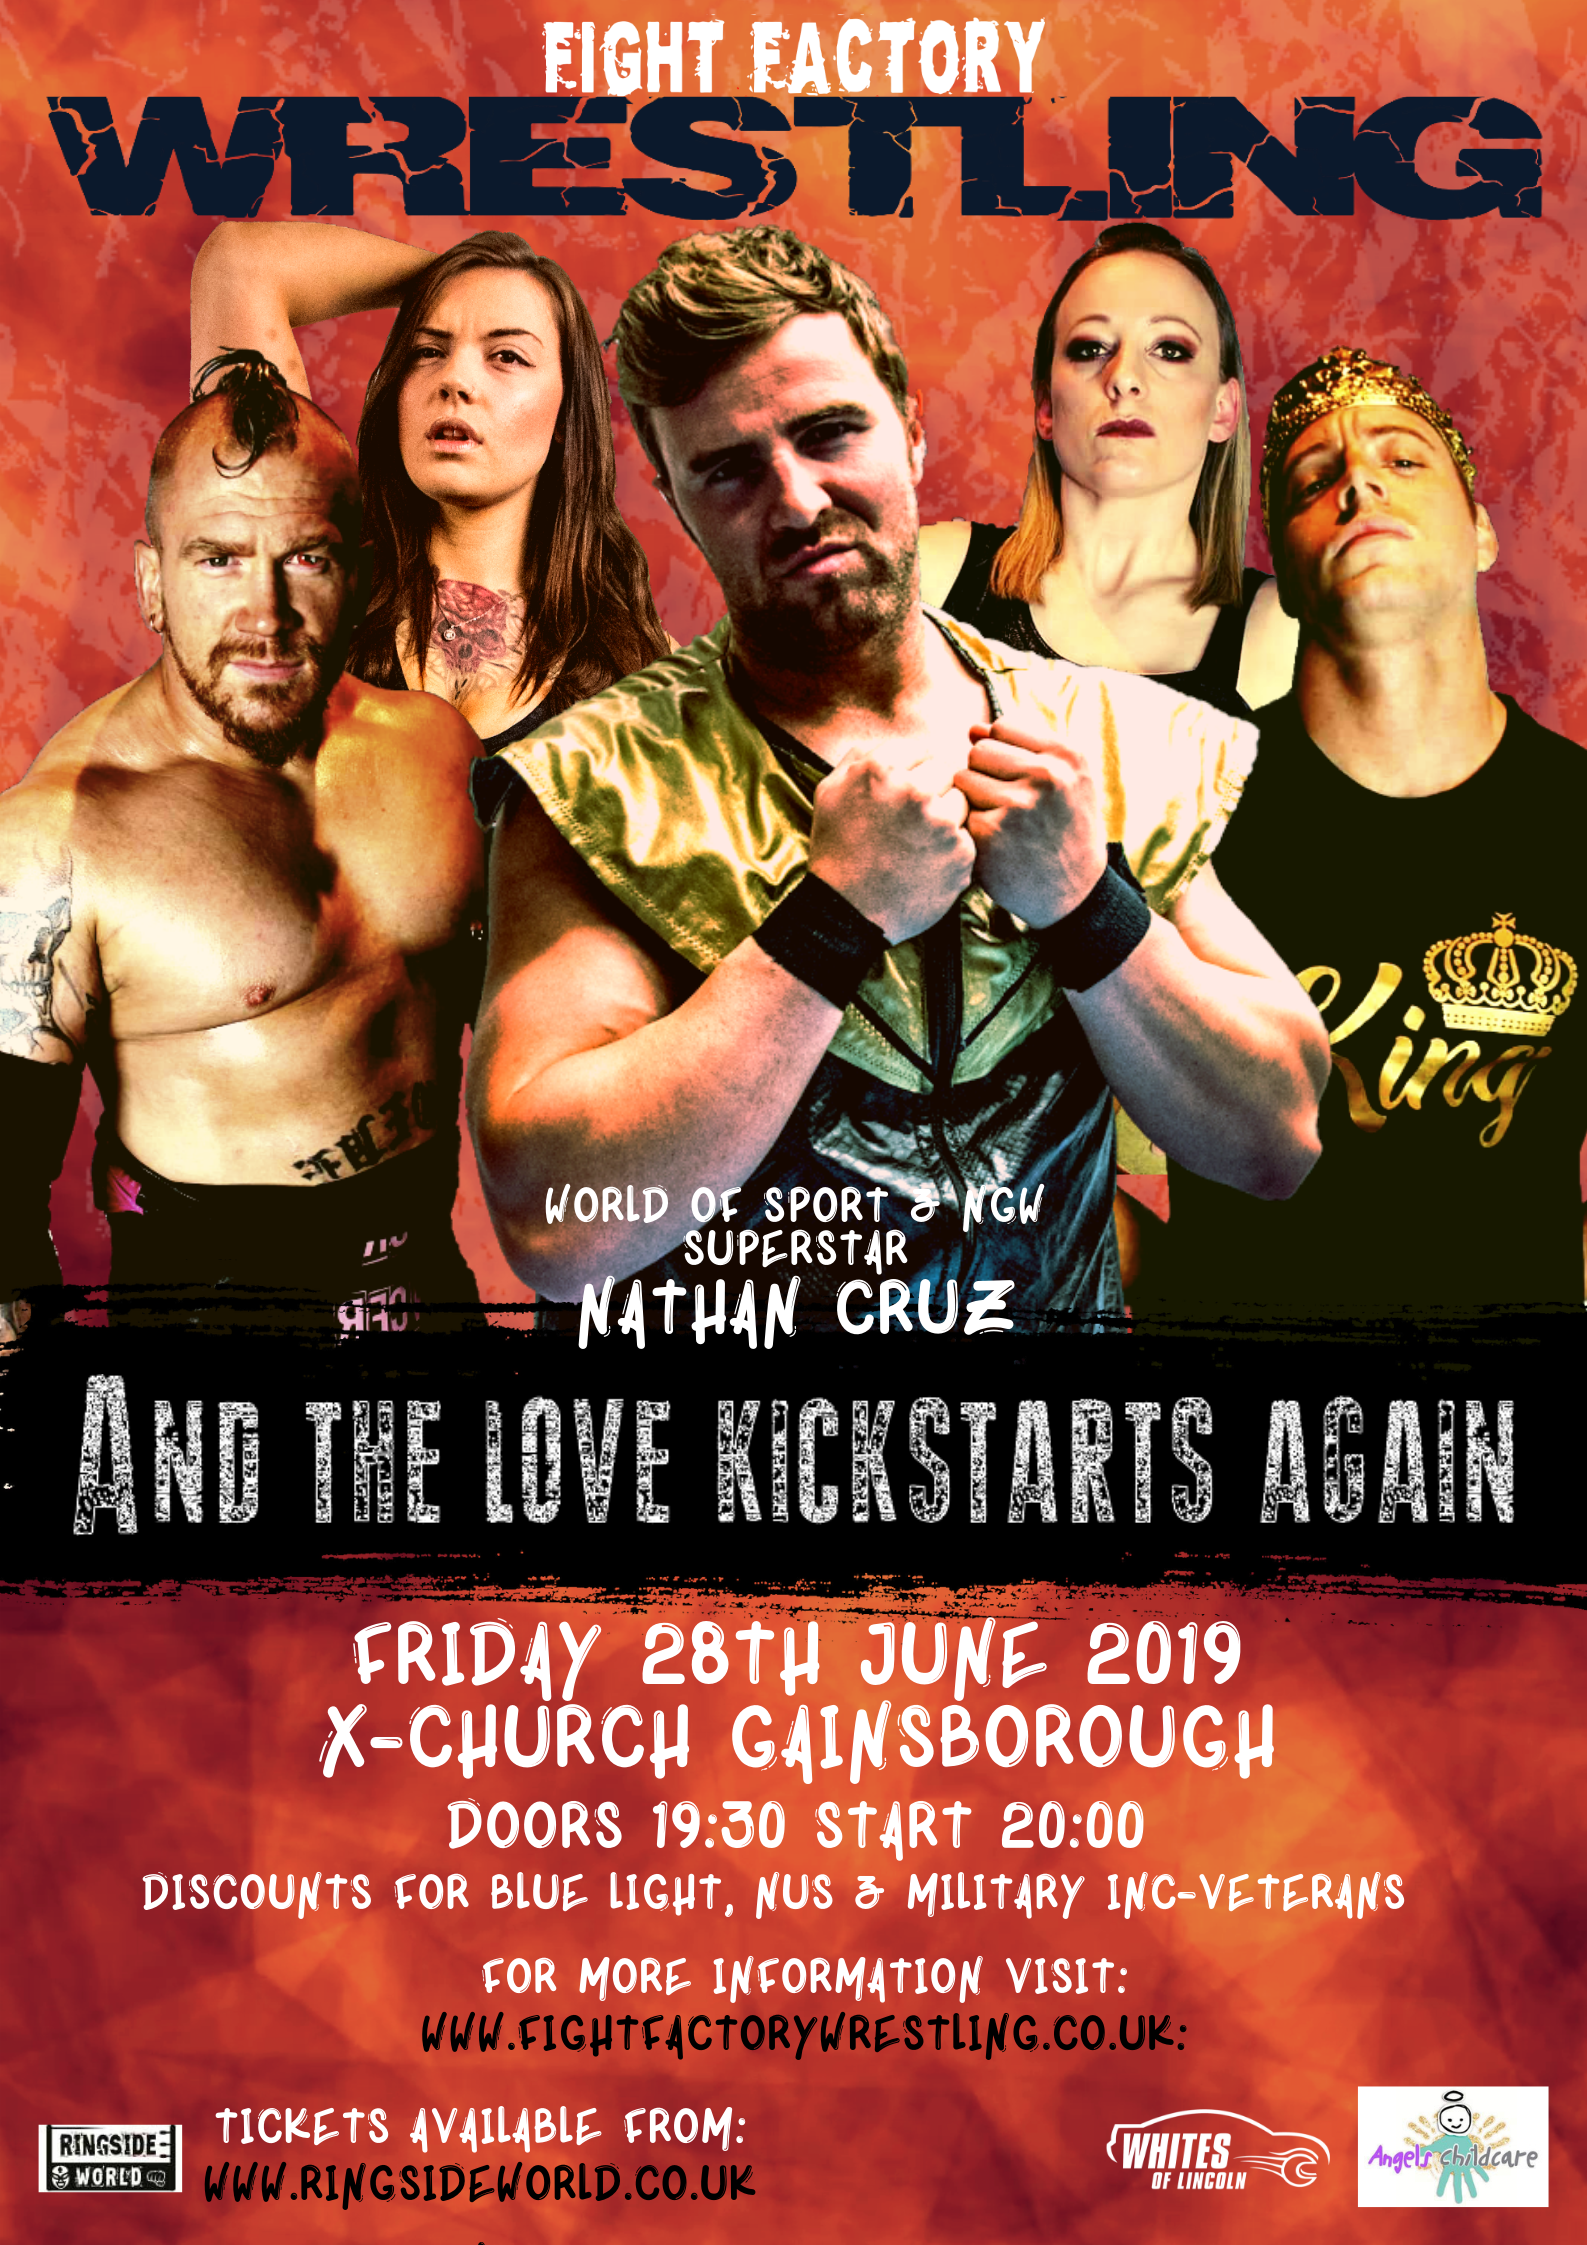 FFW presents And the Love Kick-Starts again event description image